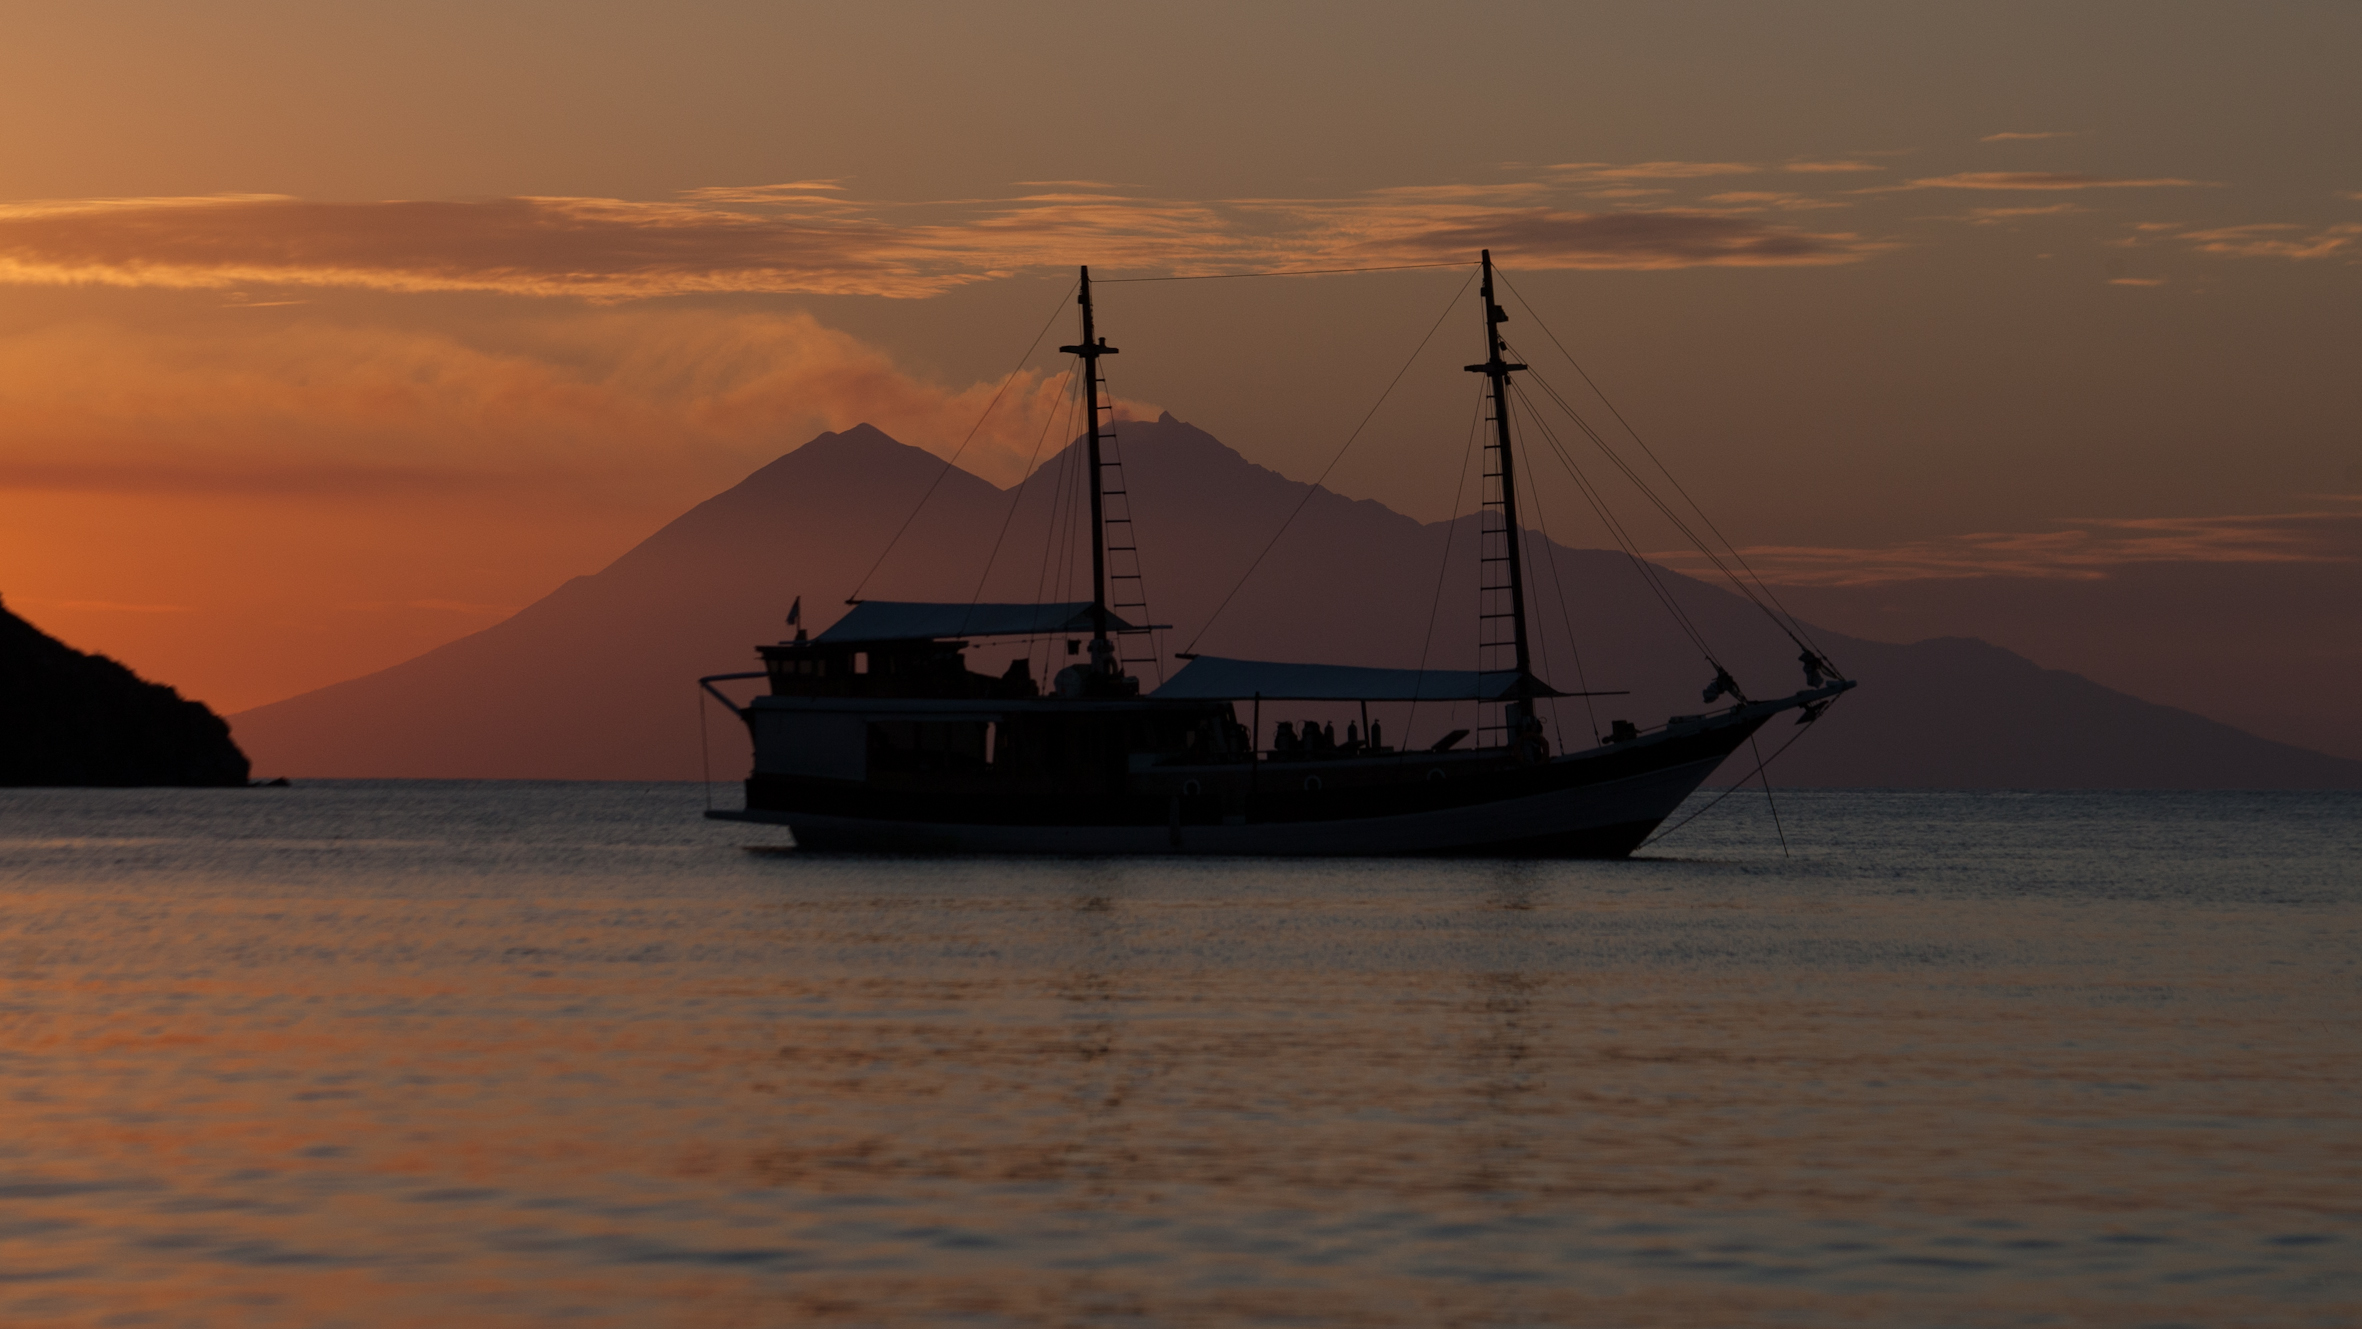 komodo-diving-liveaboard.jpg